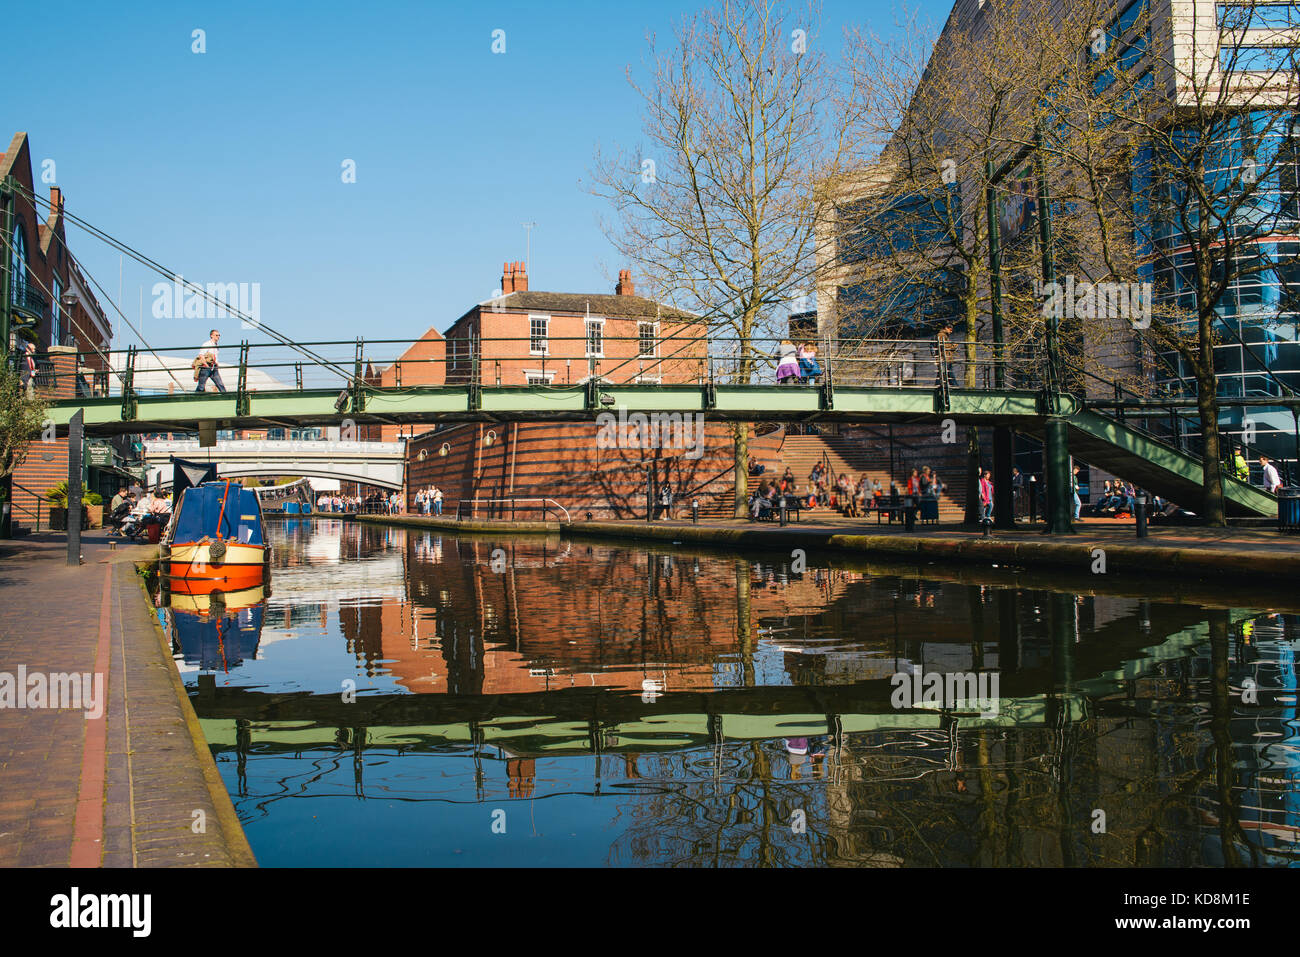 People strolling along Birmingham's main canal on a pleasant morning - Stock Image